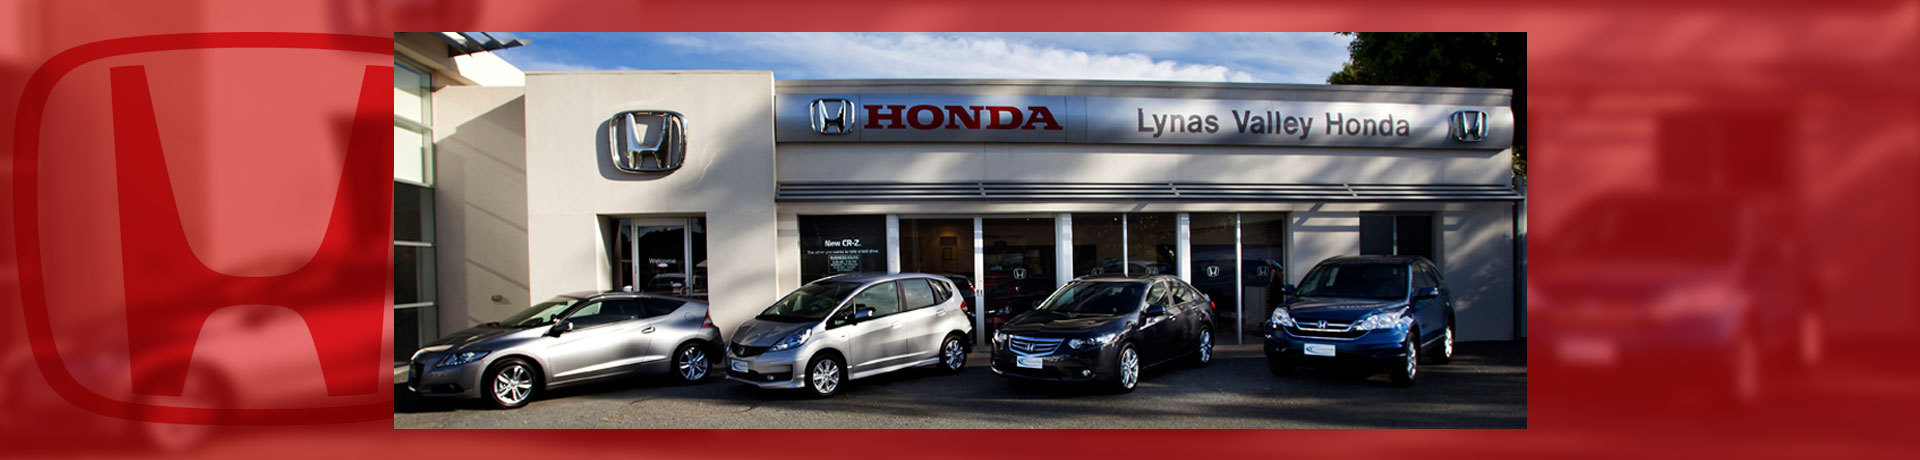 Lynas Valley Honda | All Stock